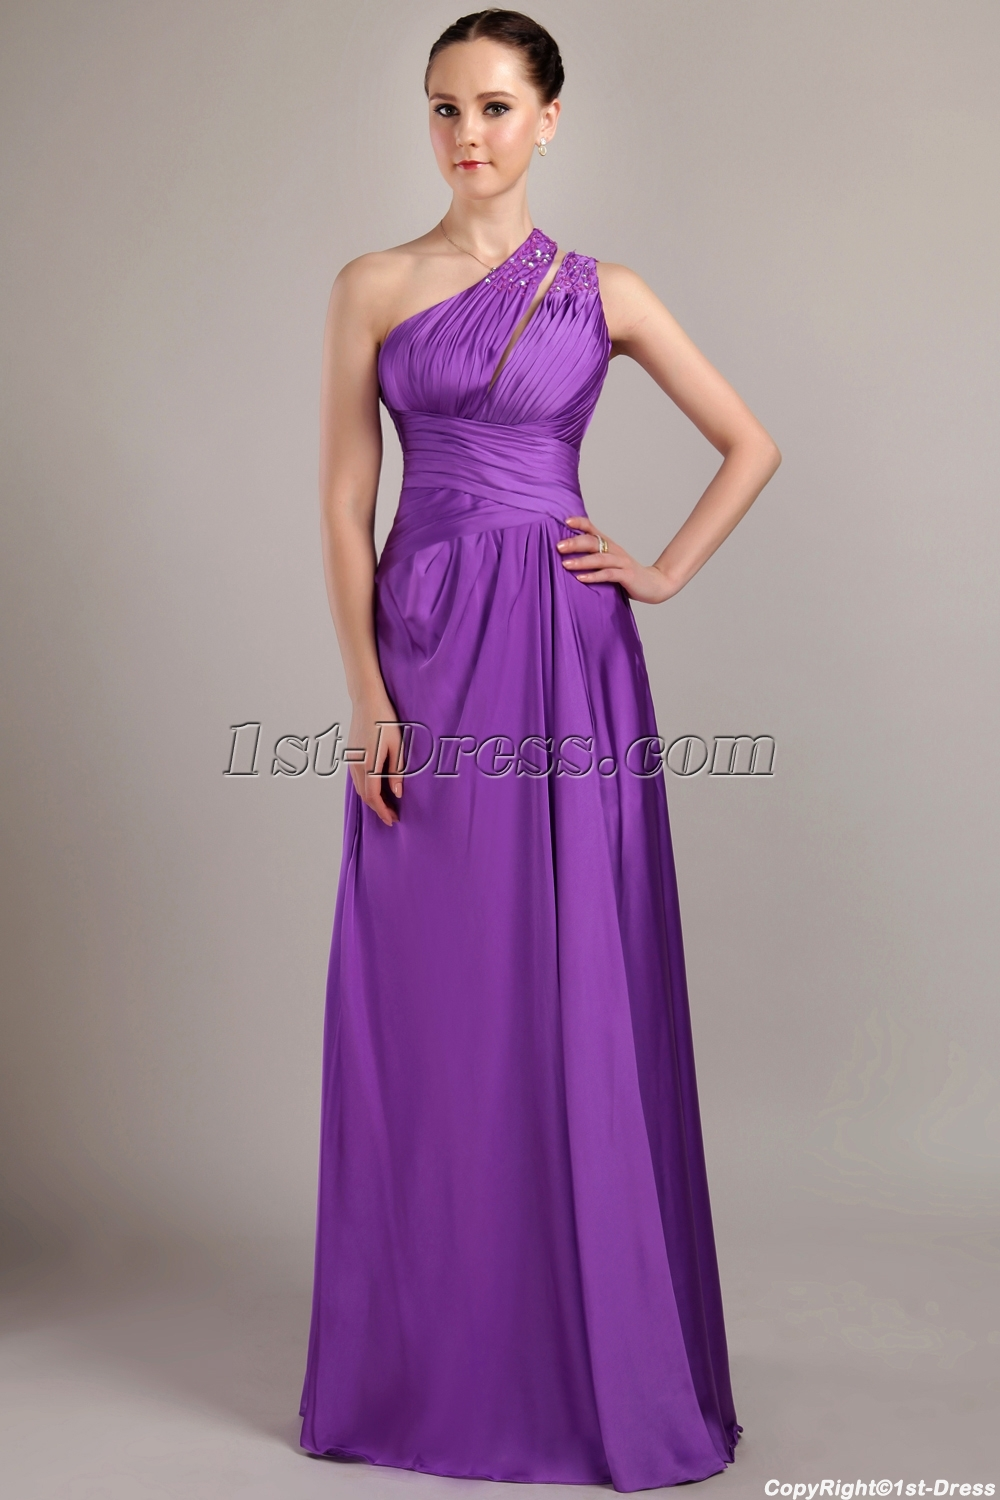 images/201304/big/Long-Violet-Graduation-Dress-with-One-Shoulder-IMG_3026-1047-b-1-1366107447.jpg